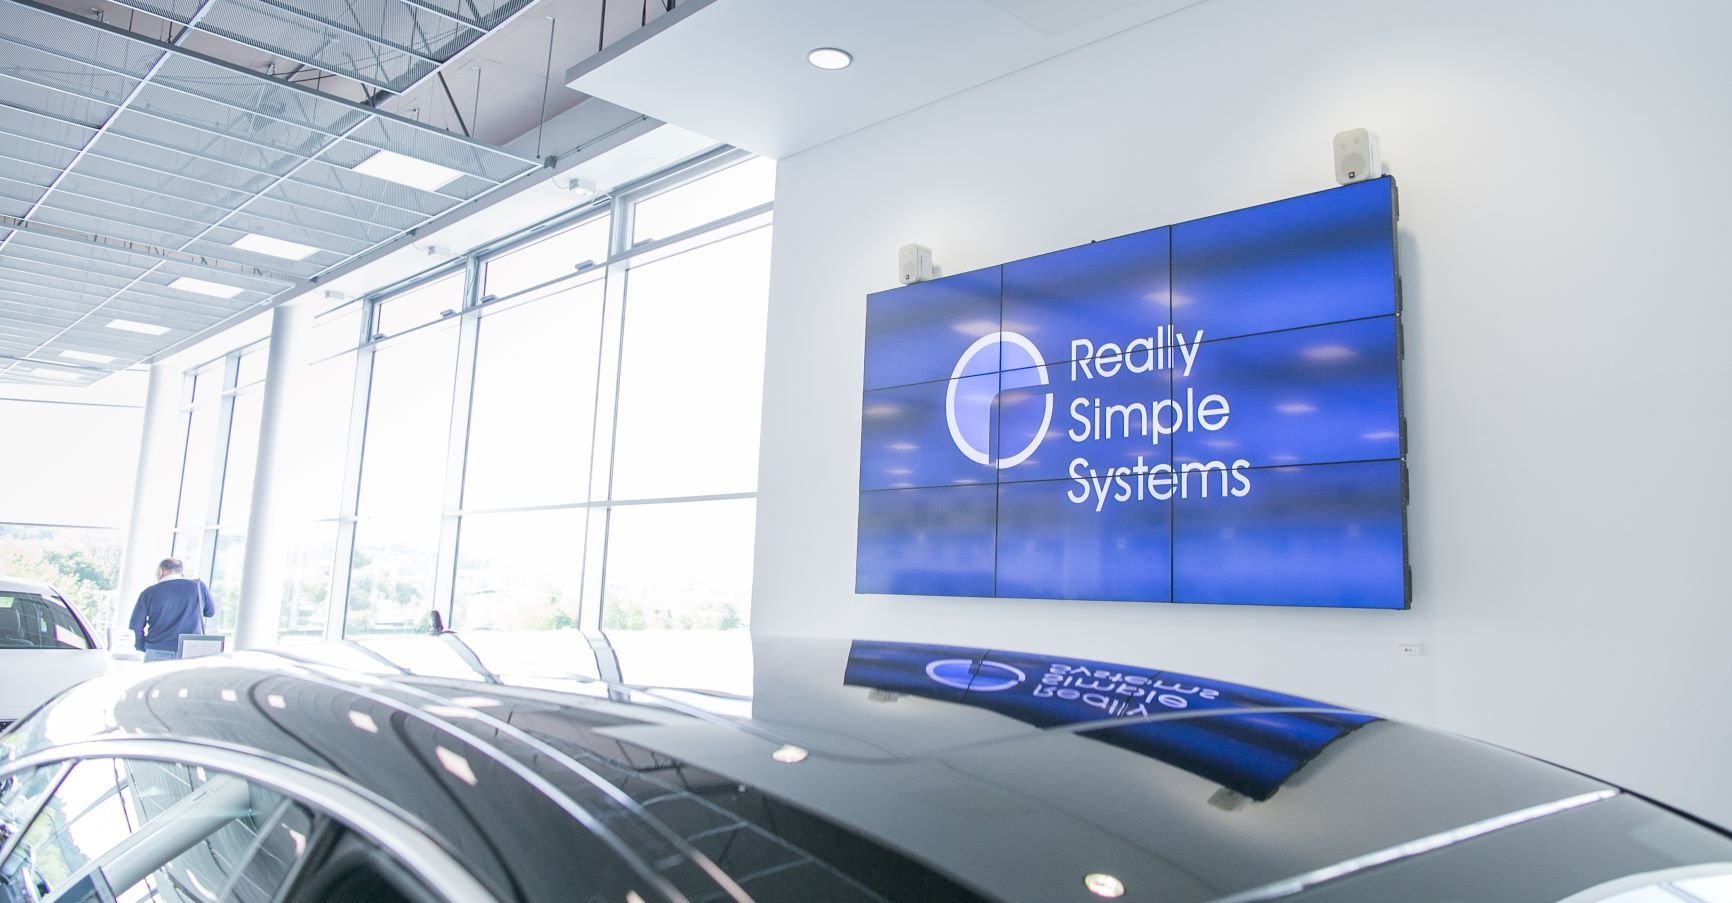 Really Simple Systems 2017 User Conference